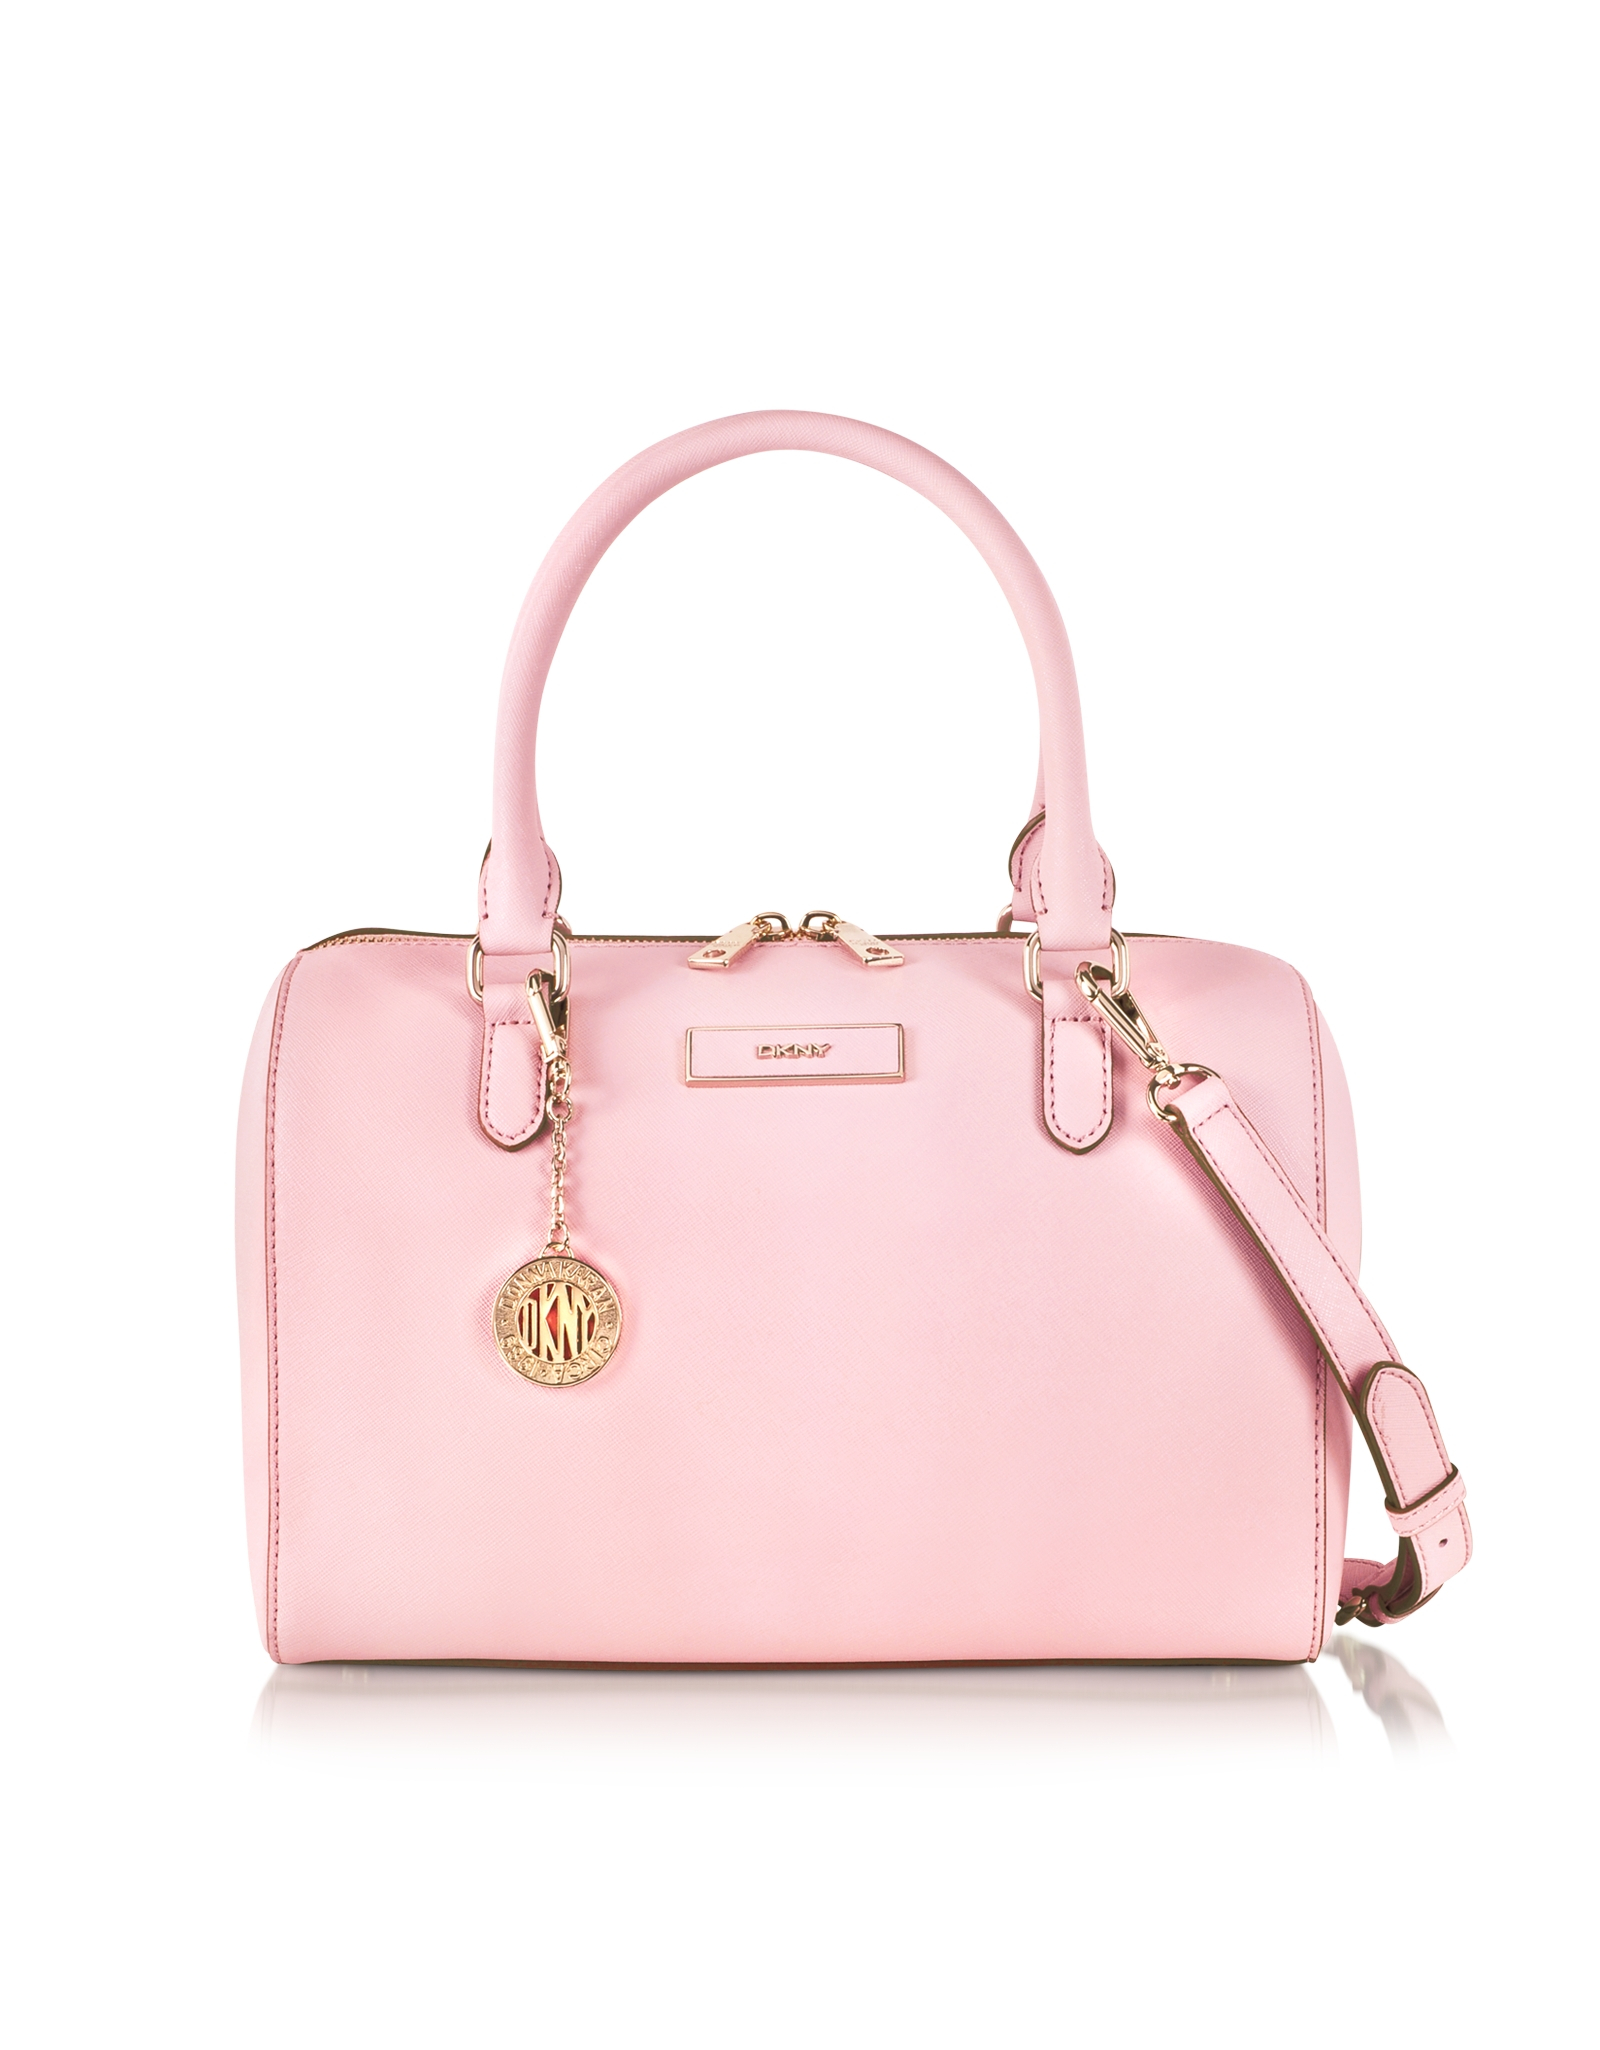 Dkny Bryant Park Saffiano Leather Satchel Bag in Pink | Lyst